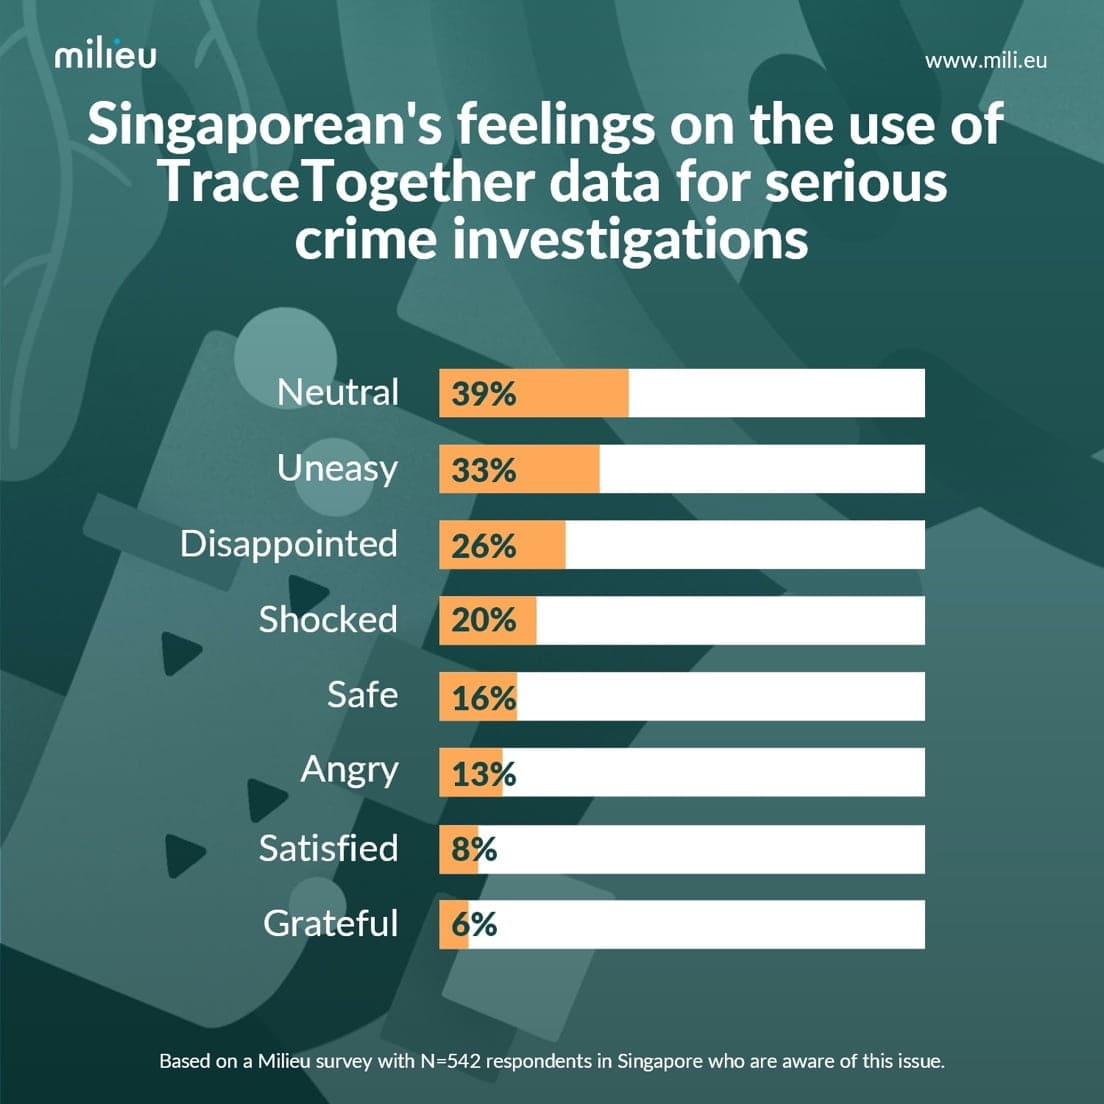 Singaporean's feelings on TraceTogether chart